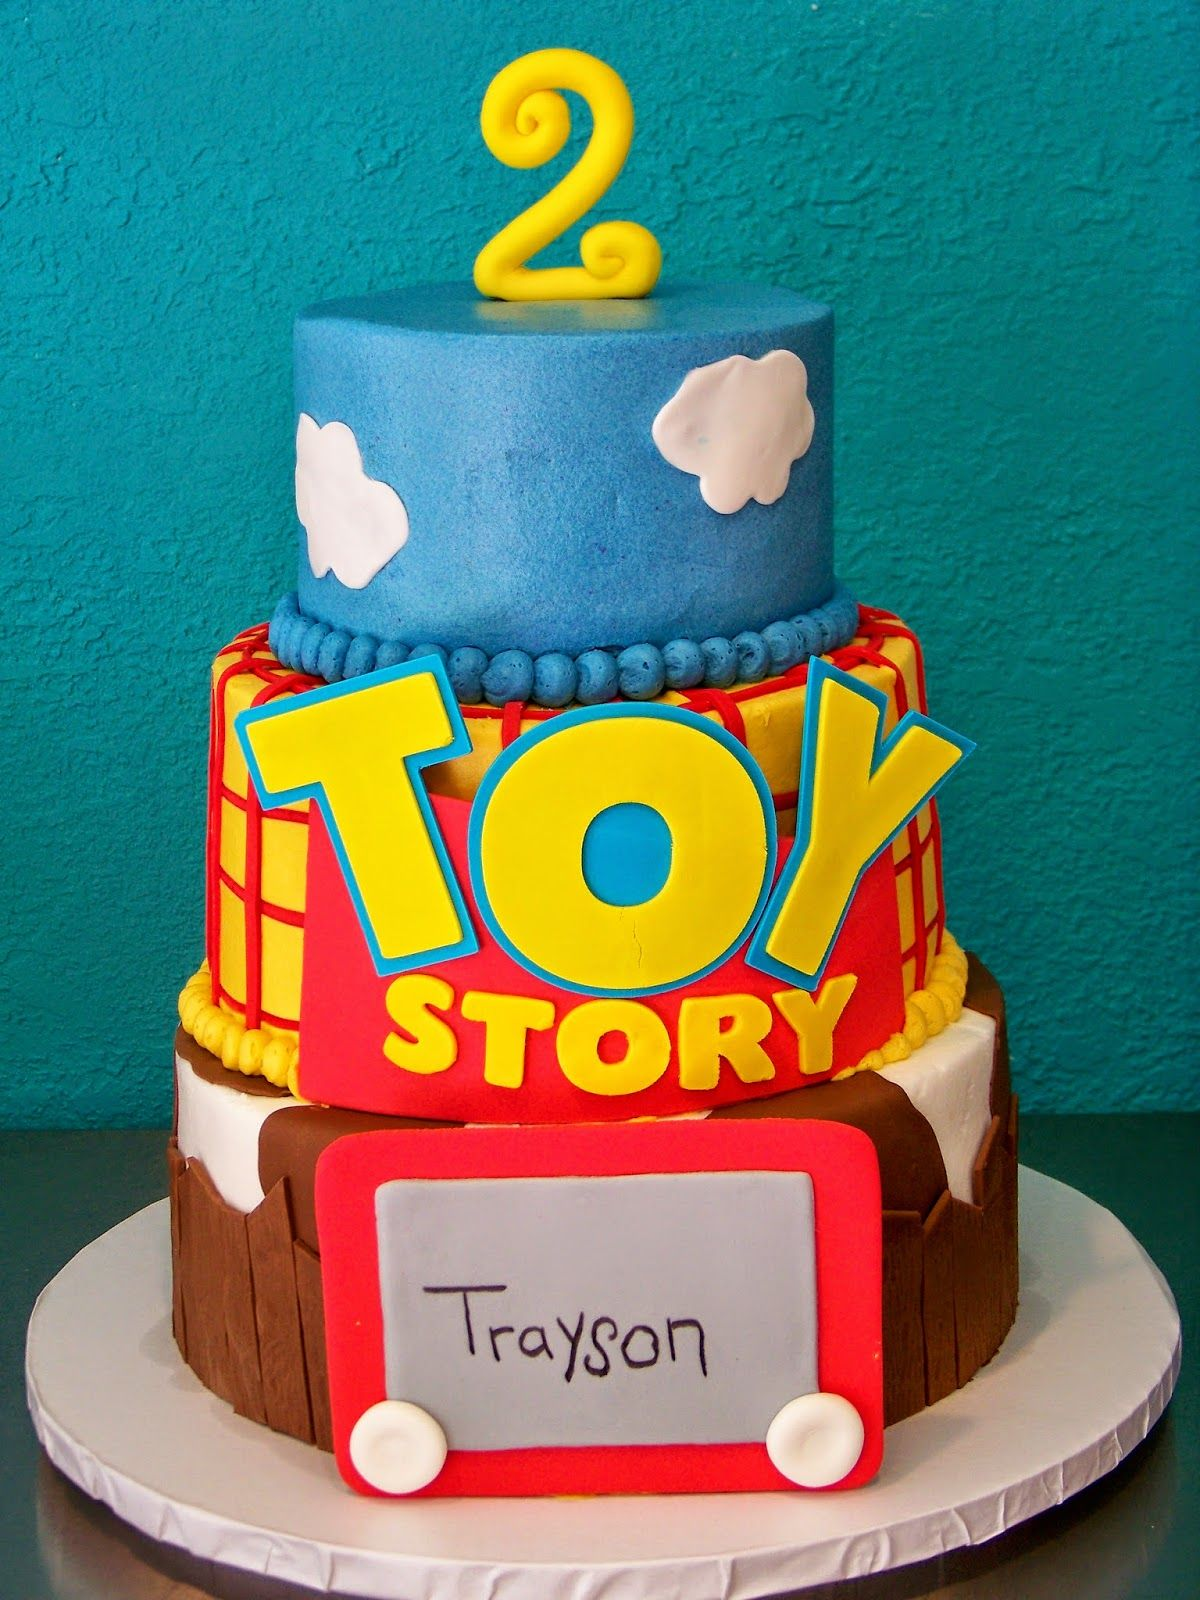 Cake Design Step By Step : Toy Store Cake Tutorial - step by step instructions for ...